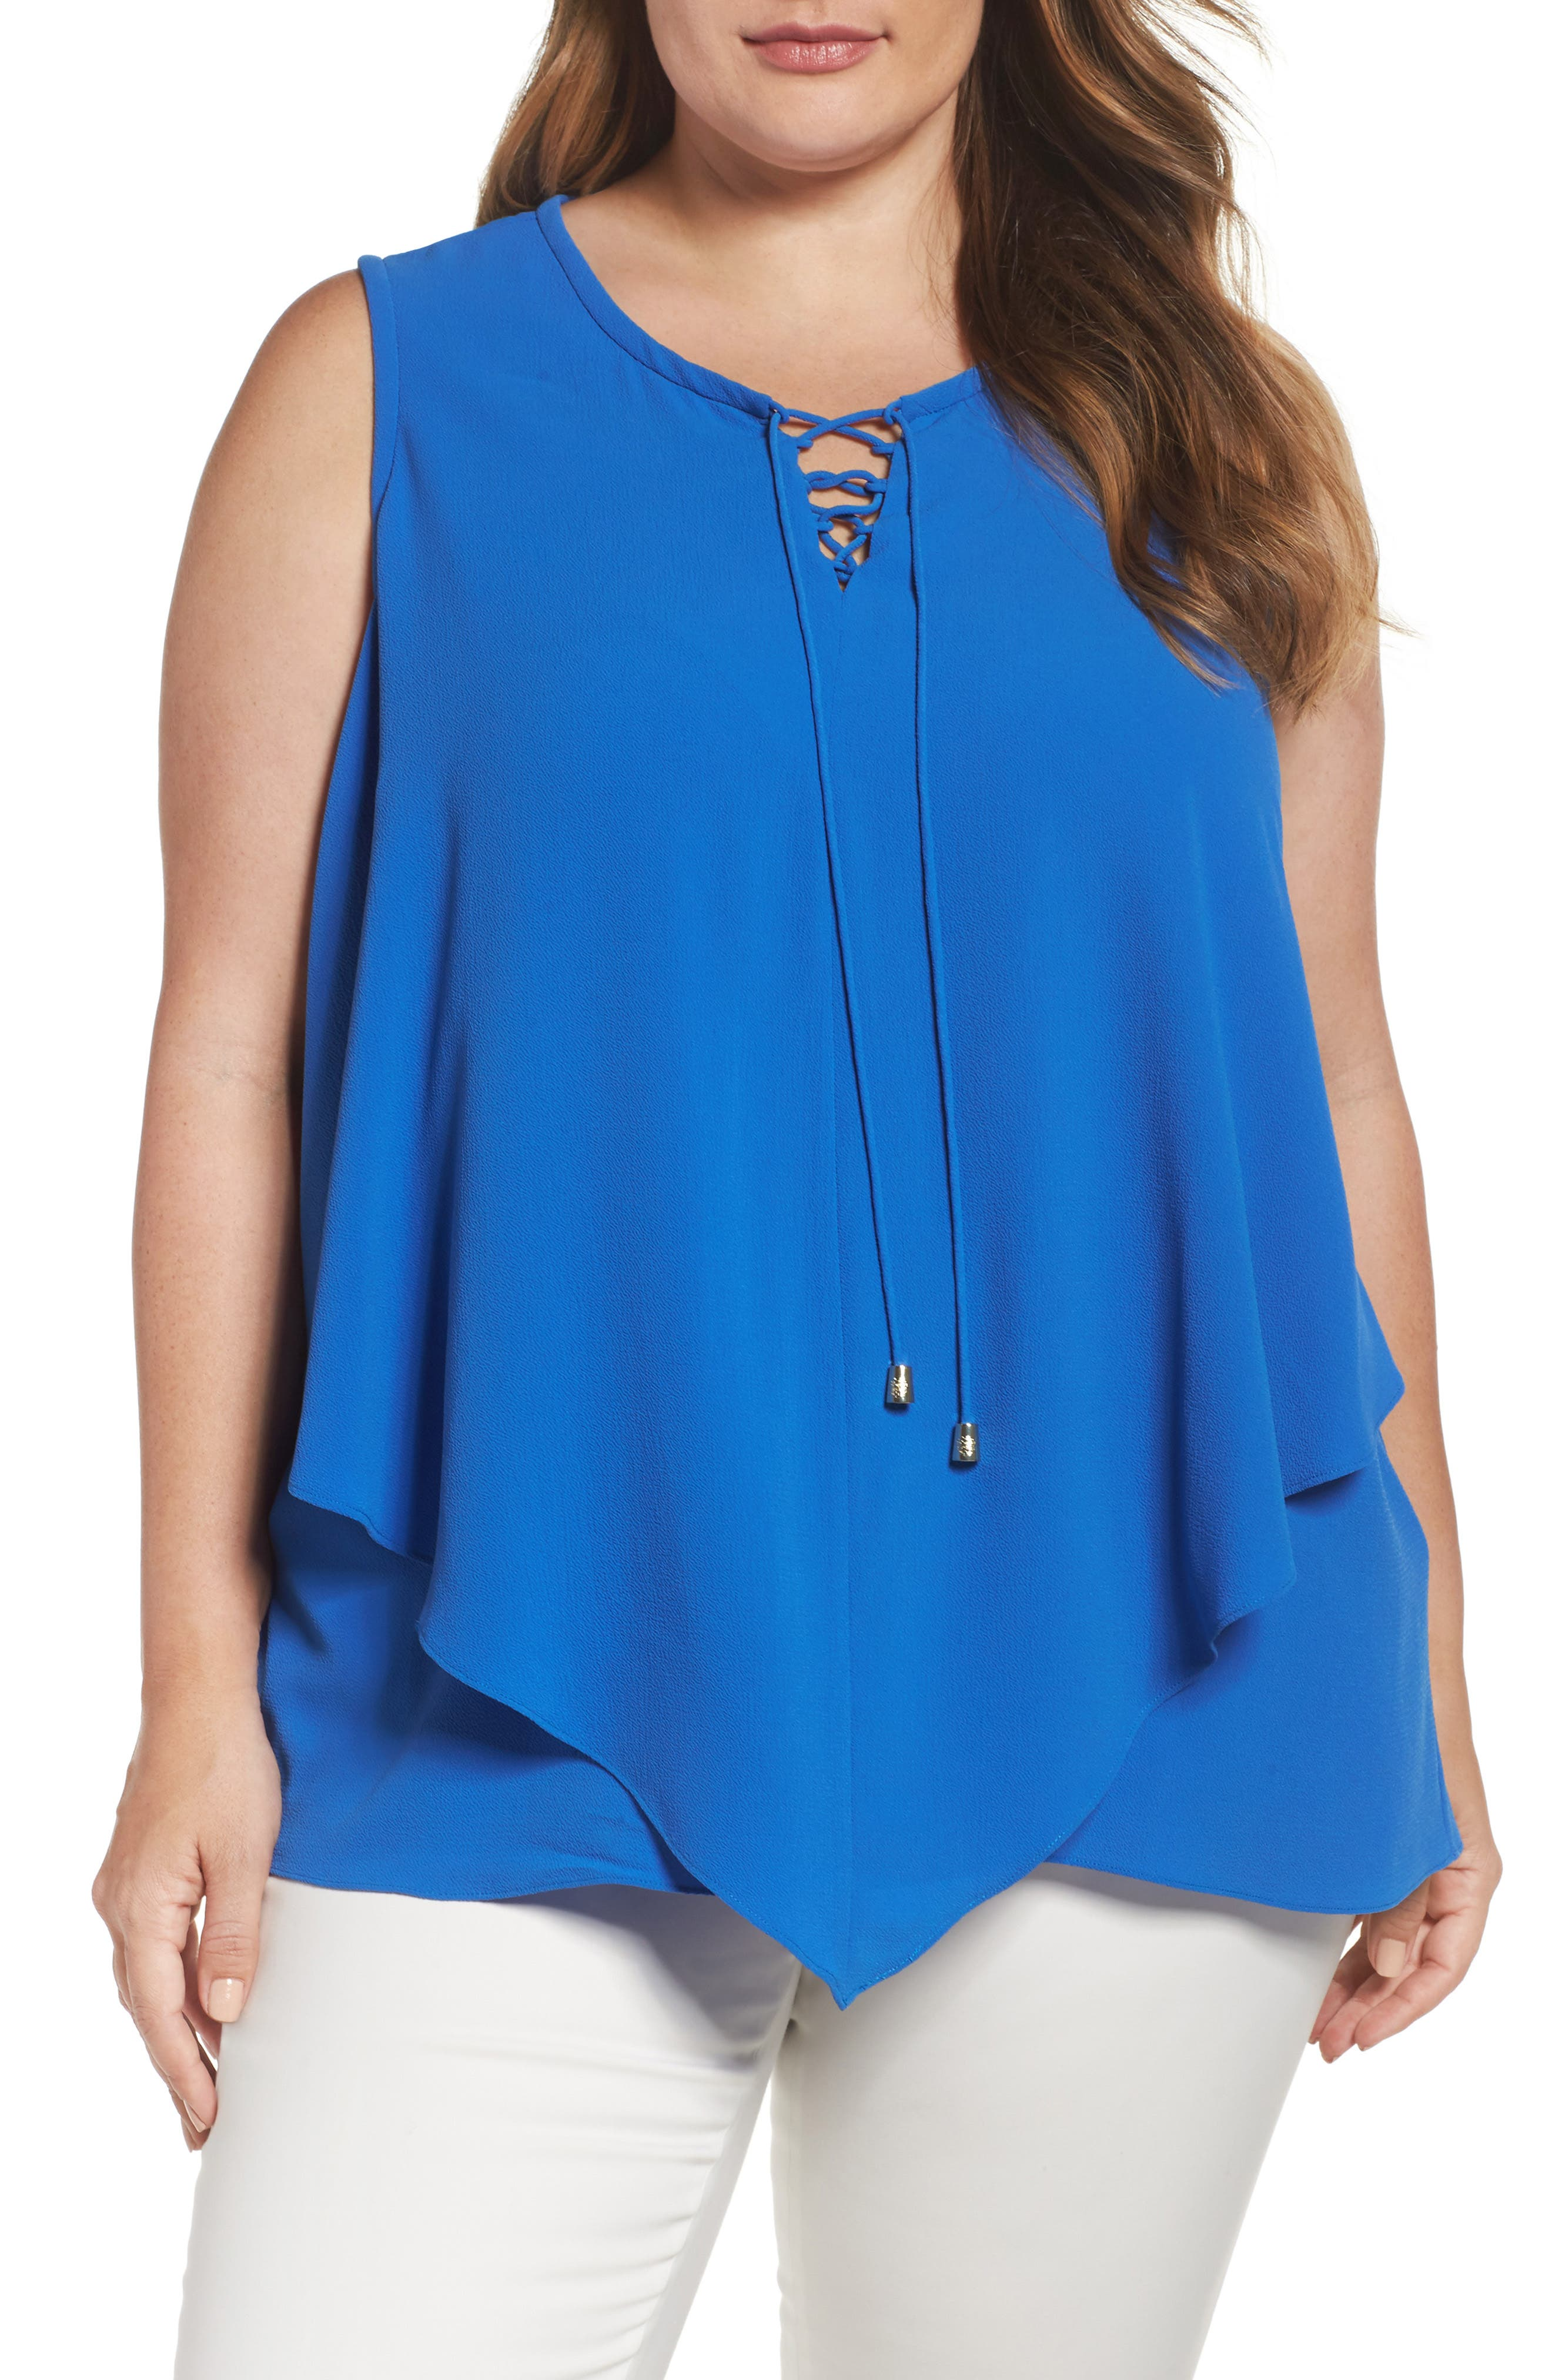 Alternate Image 1 Selected - Vince Camuto Lace-Up Handkerchief Top (Plus Size)